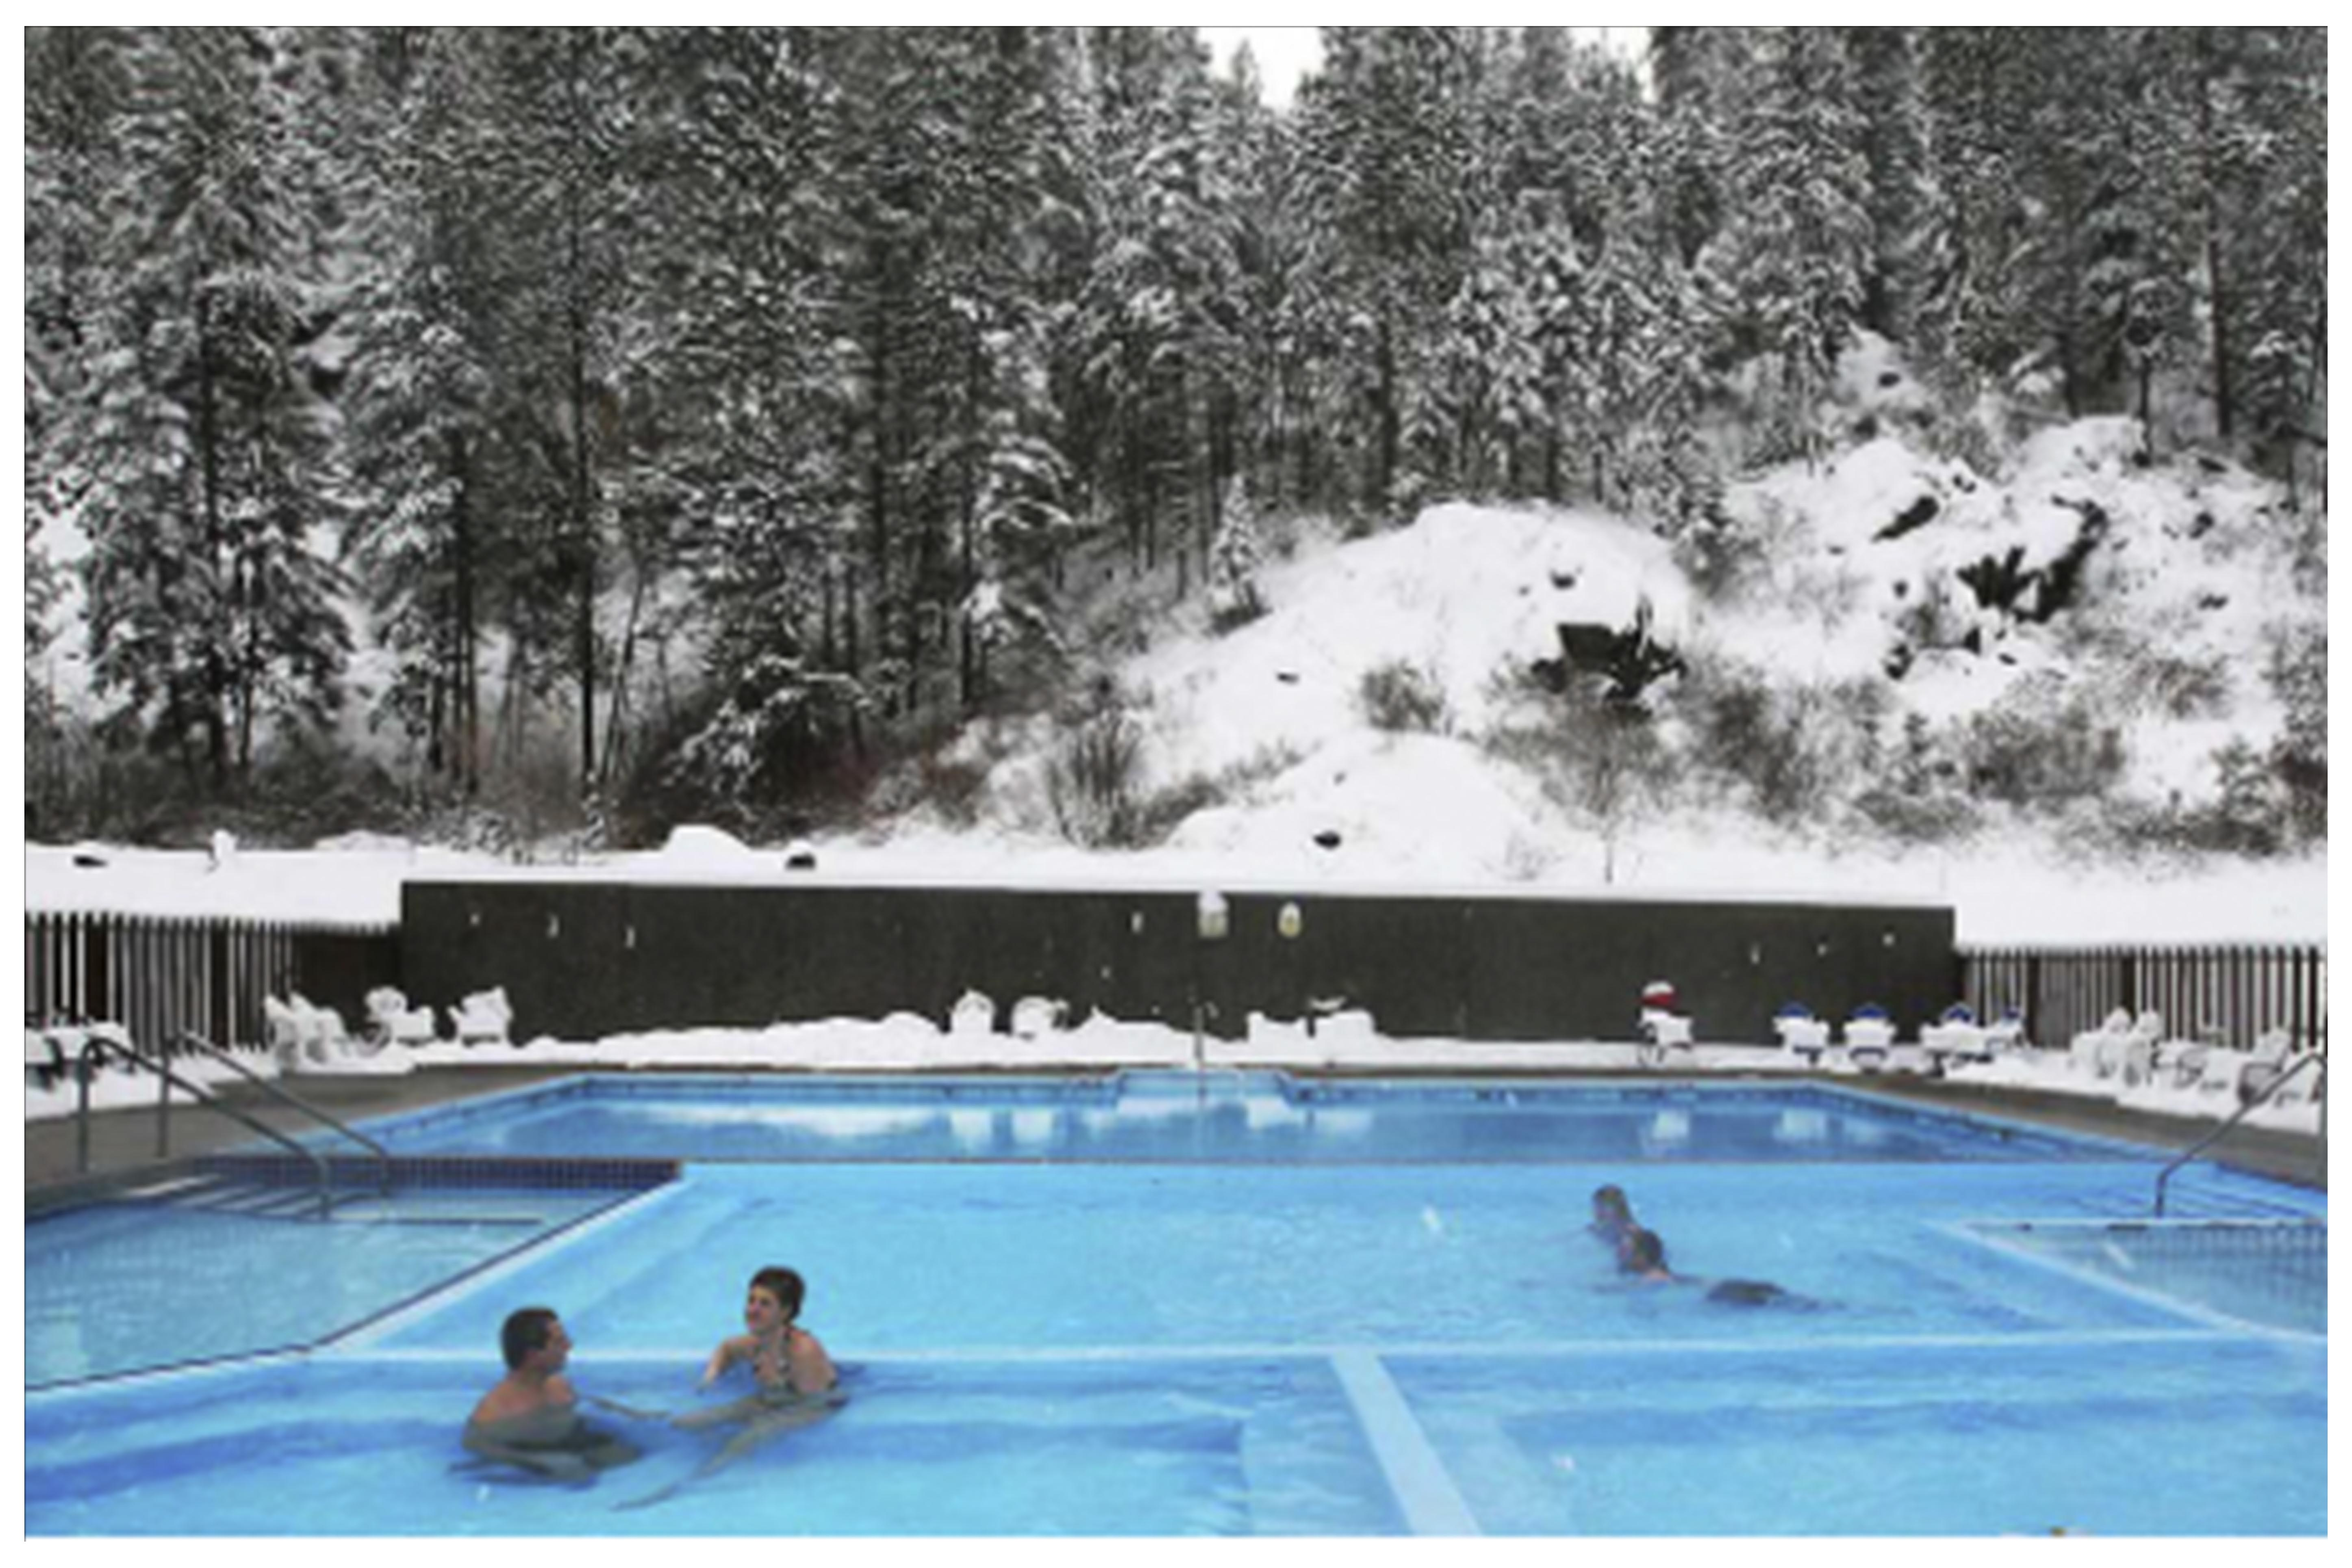 CVB_Hotsprings-2020-4_c